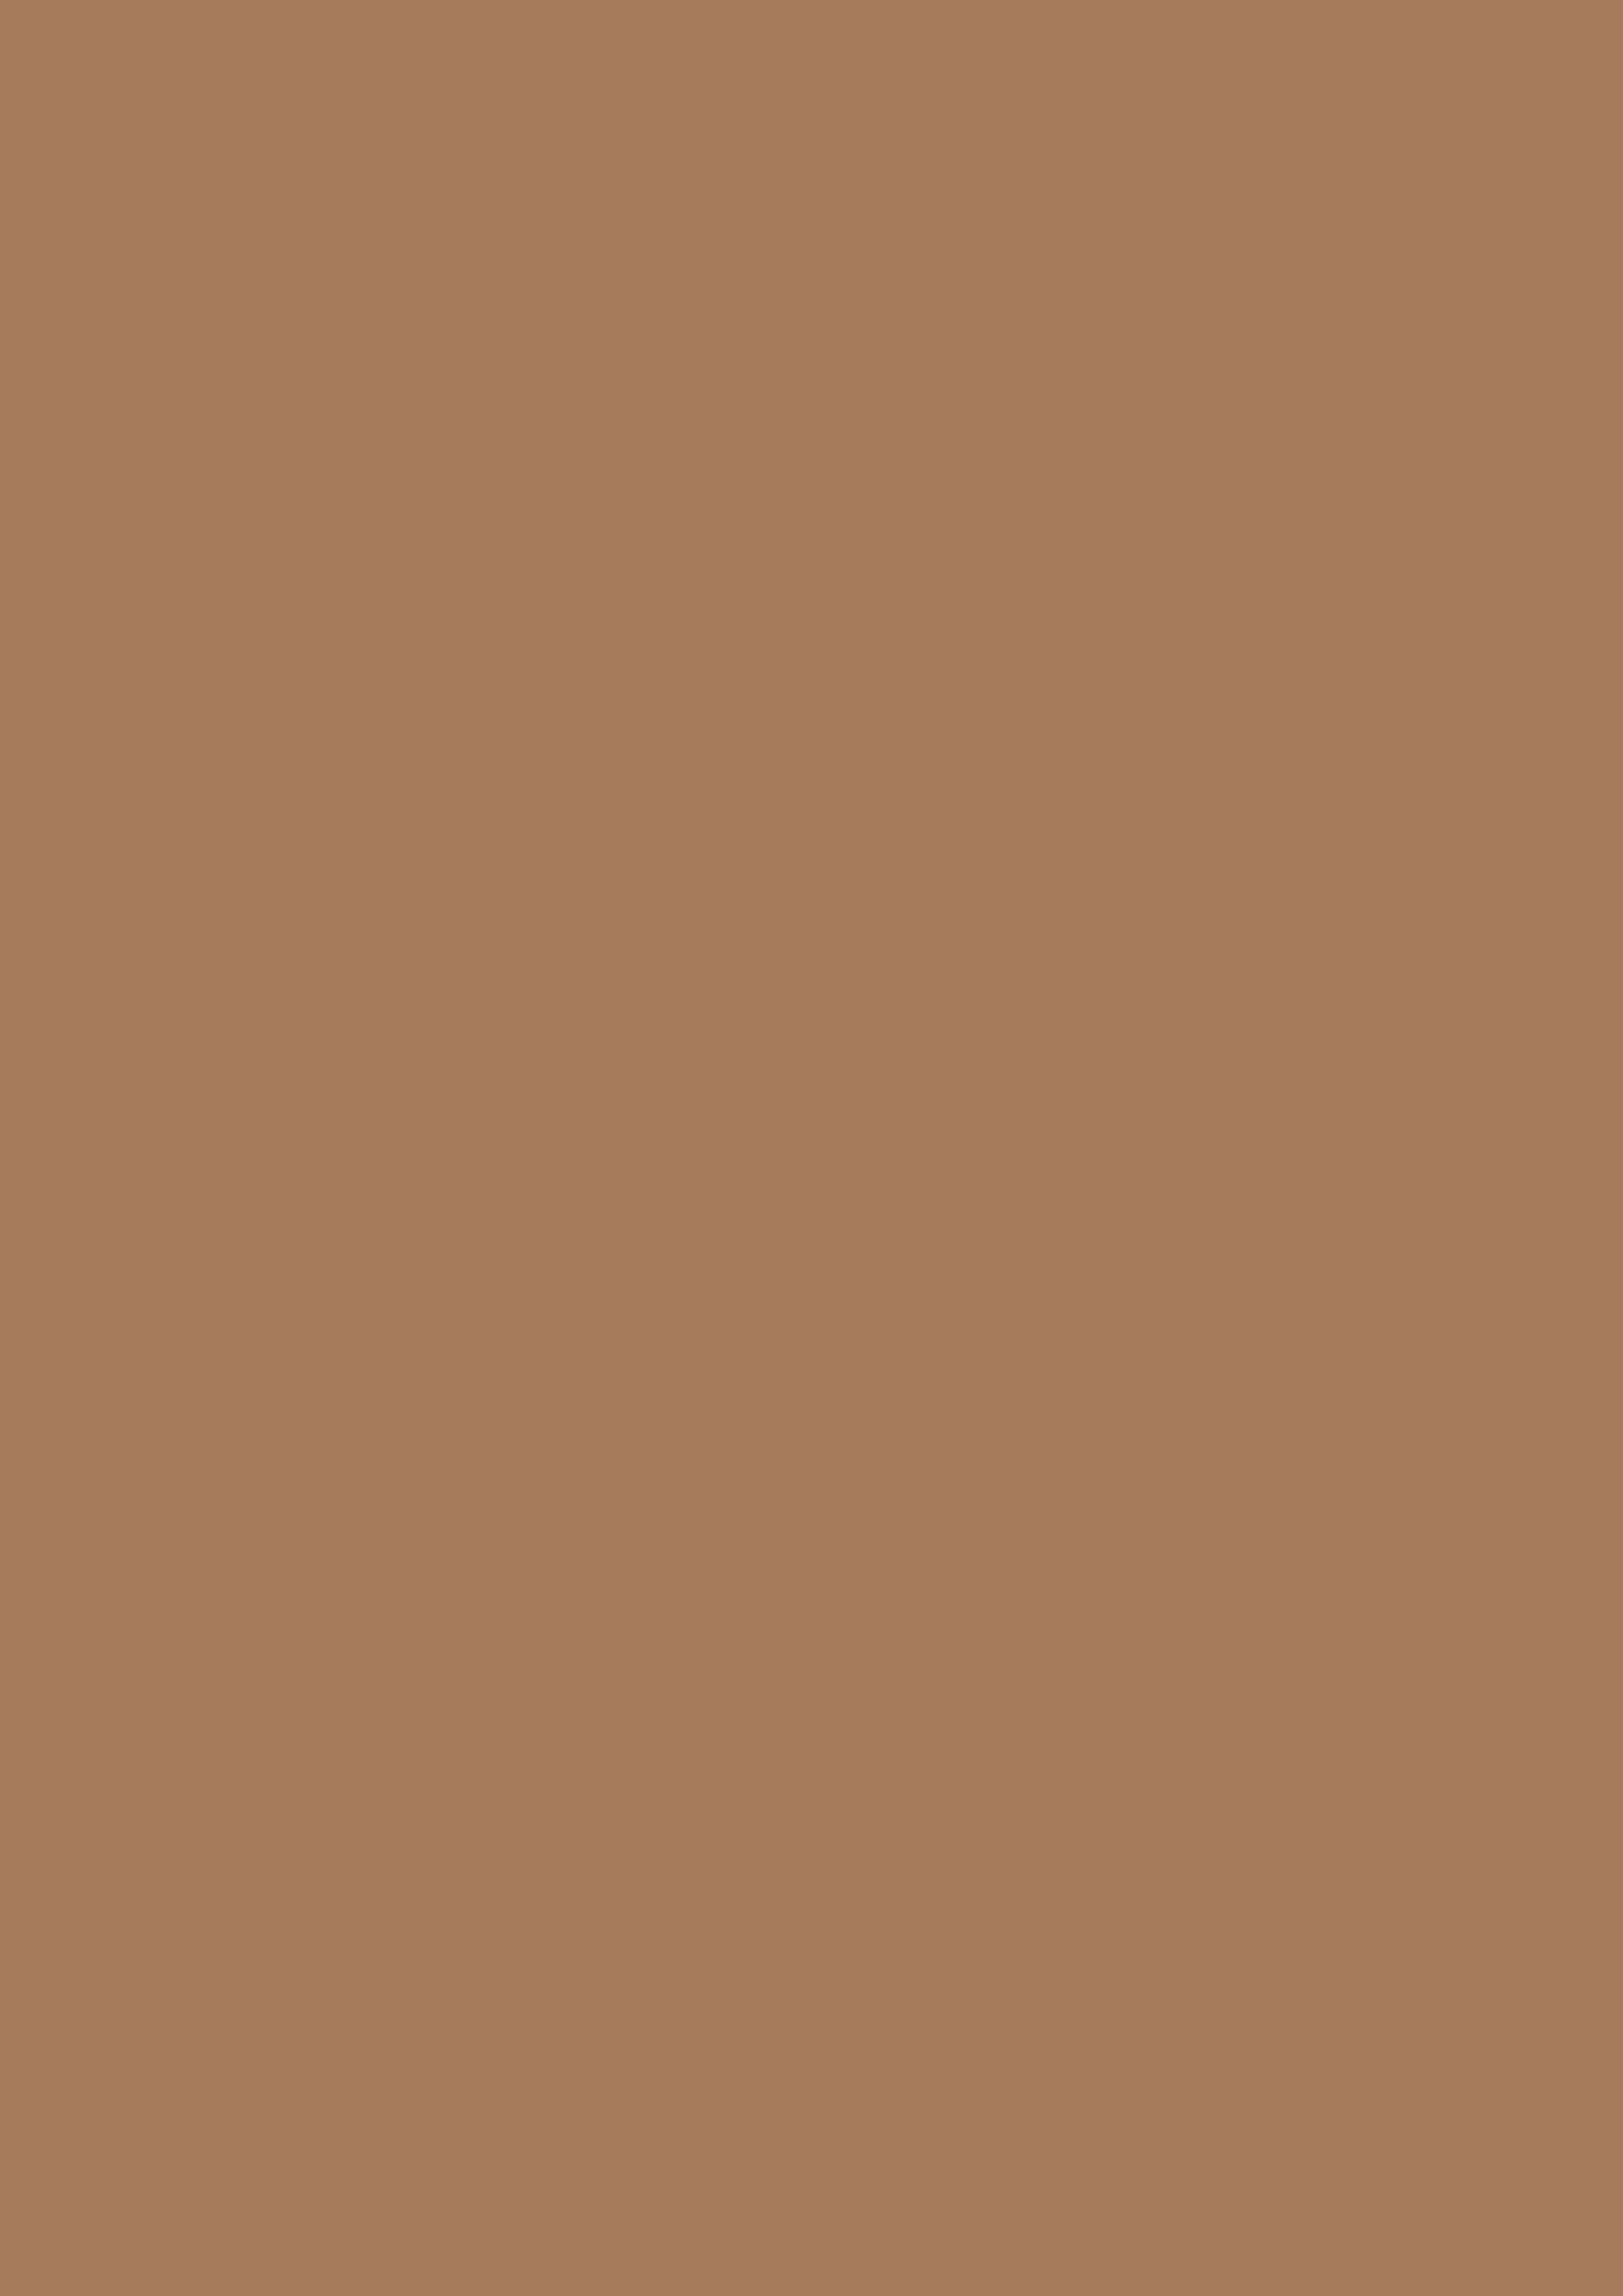 2480x3508 Tuscan Tan Solid Color Background